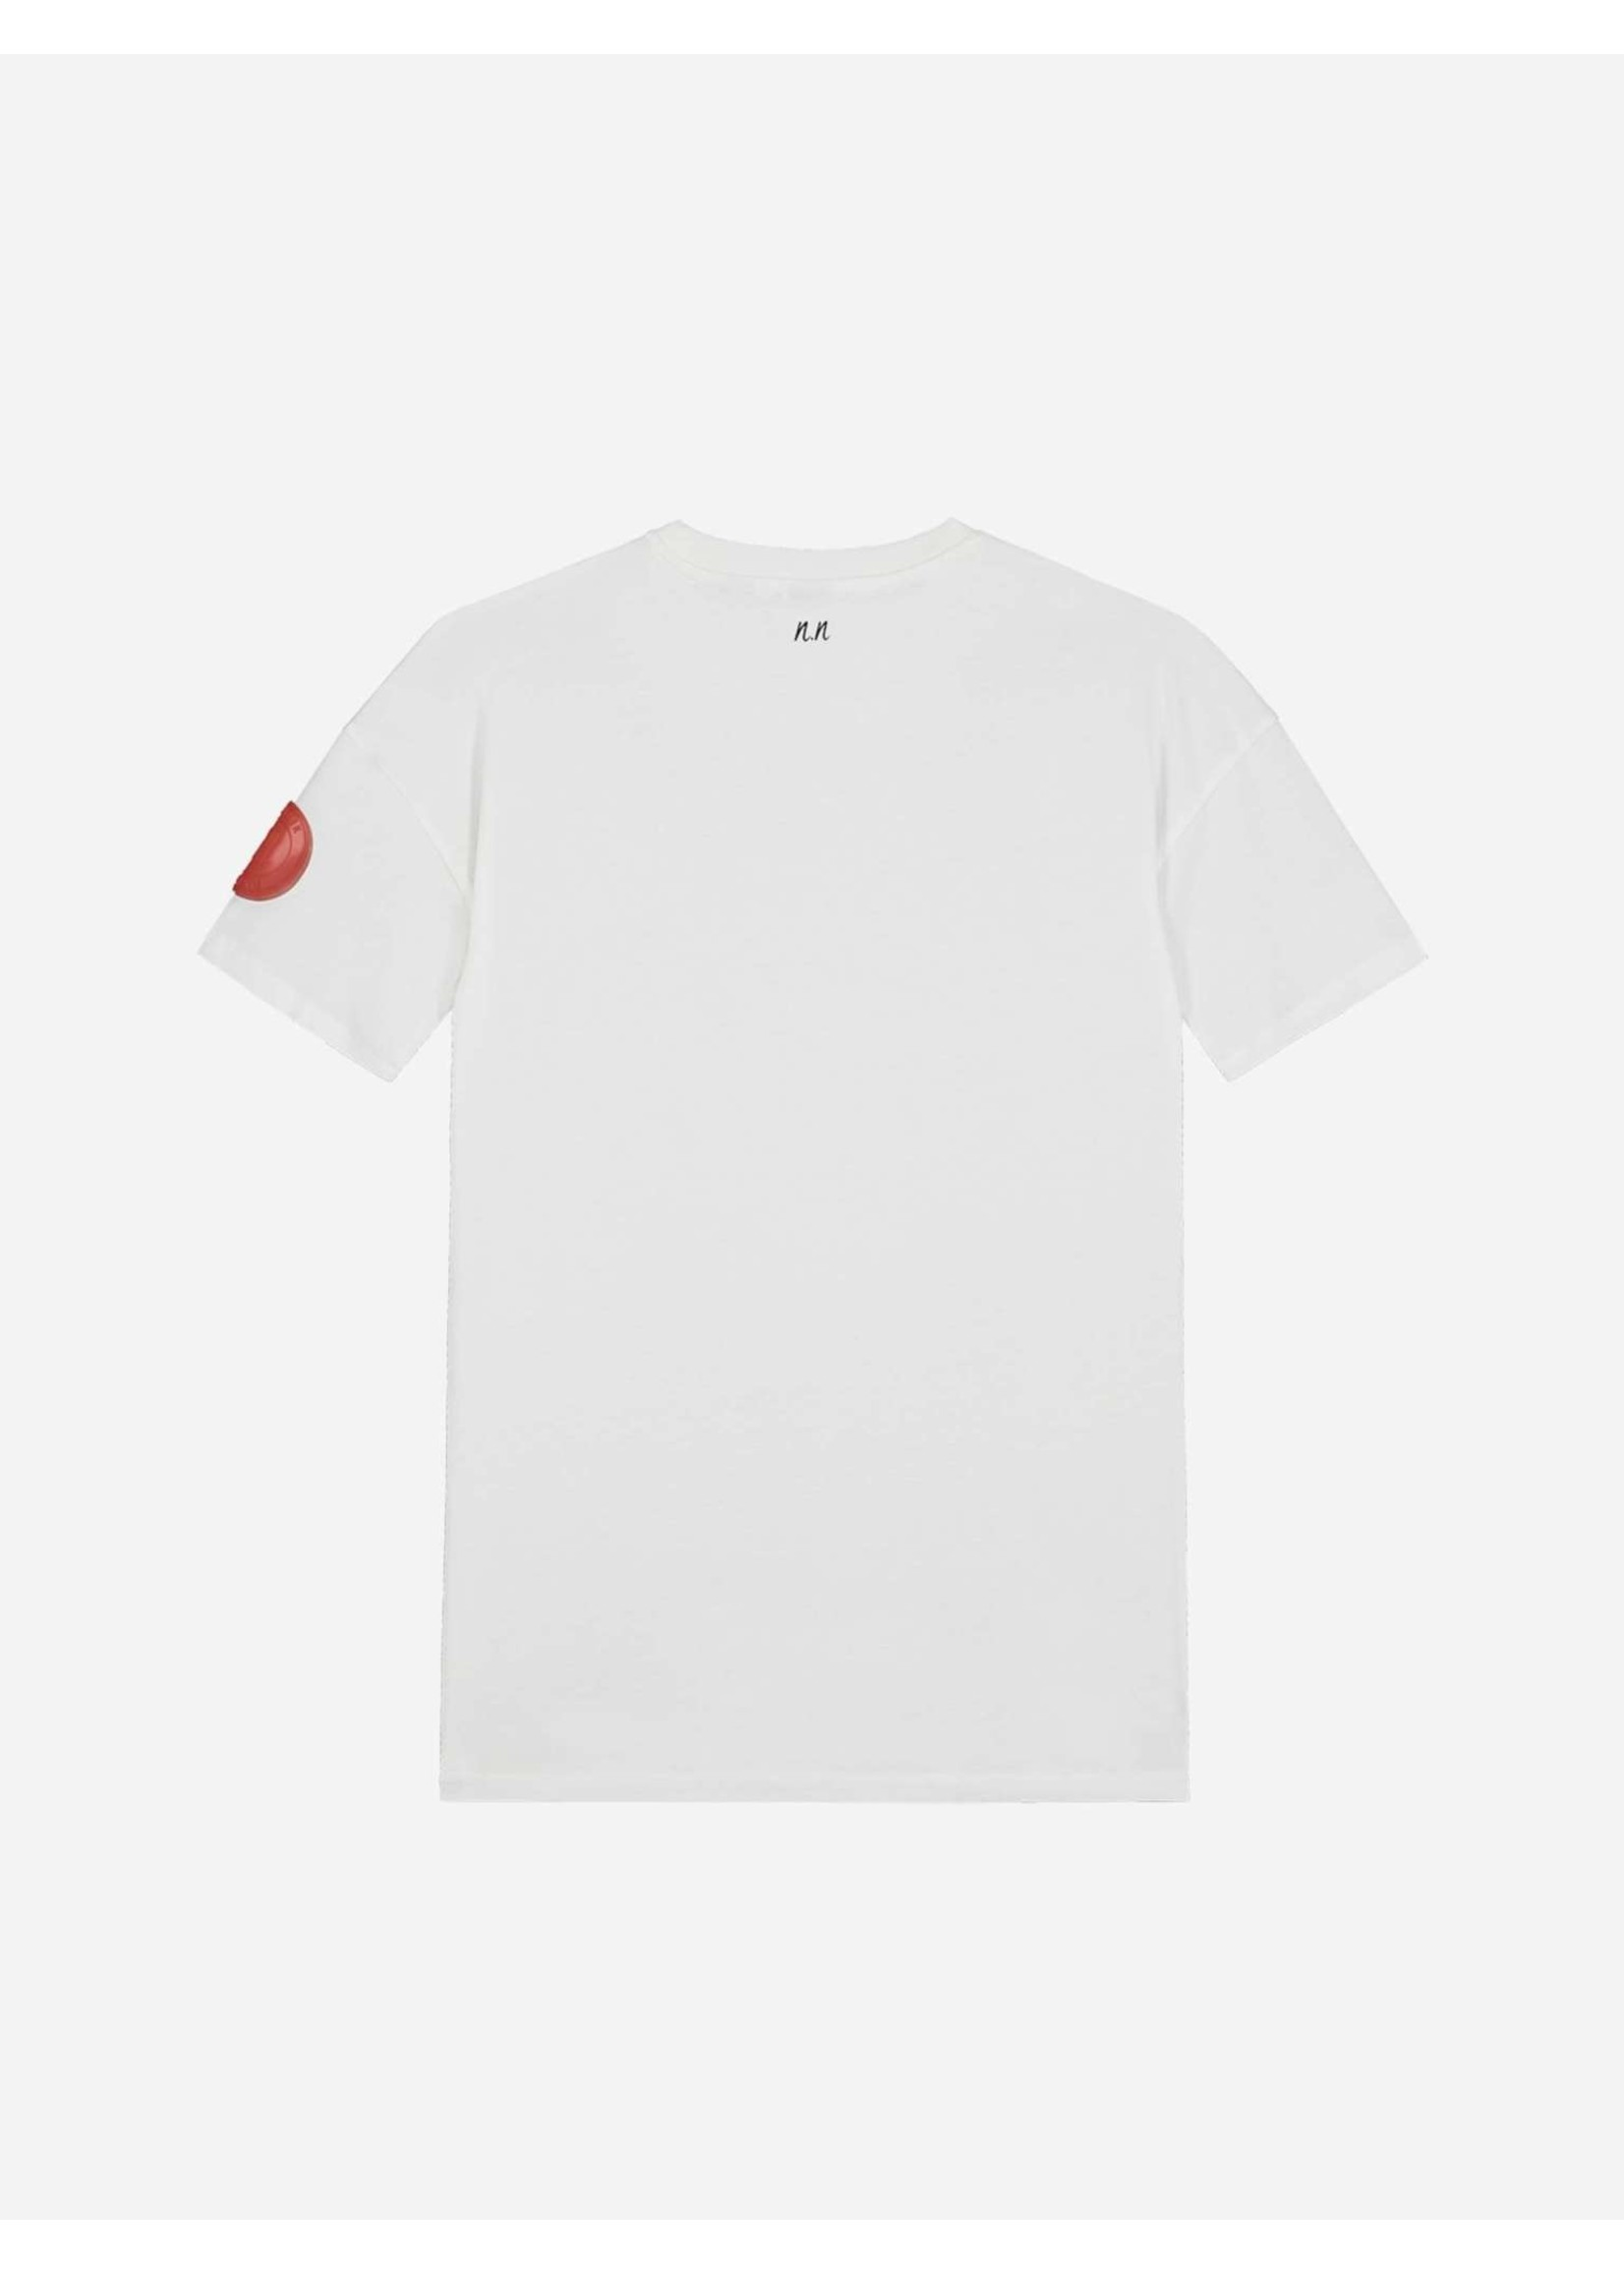 NIK&NIK Nik&Nik Manoah T-Shirt - Off White